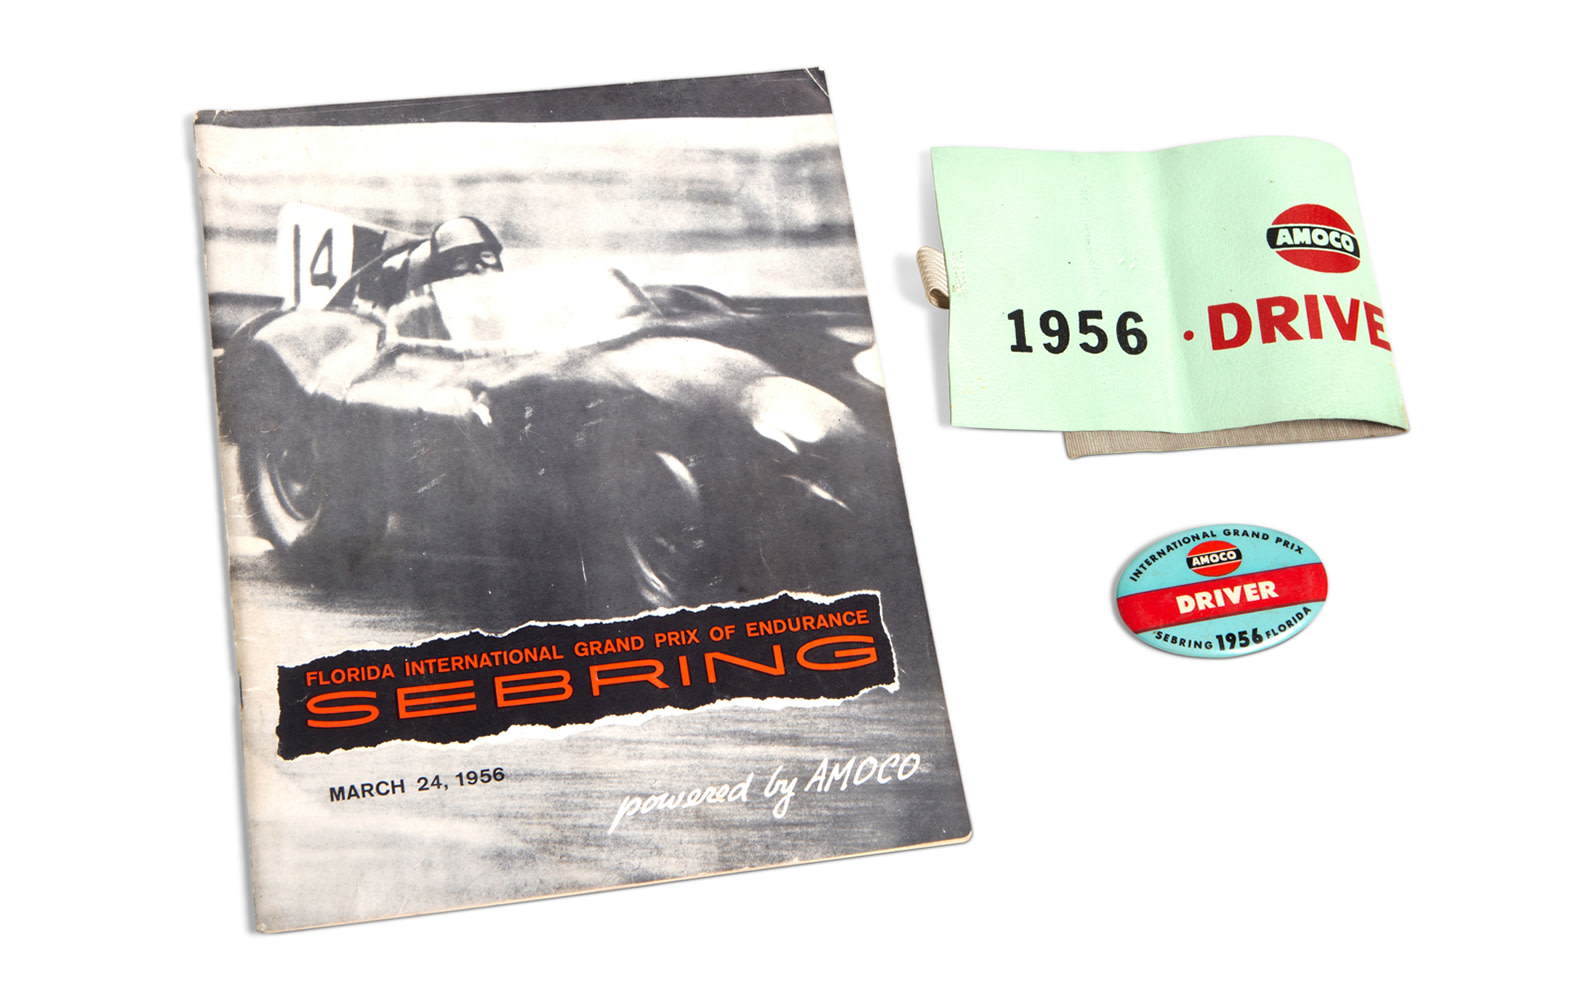 1956 12 Hours of Sebring Driver Armband, Driver Pin, and Official Race Program